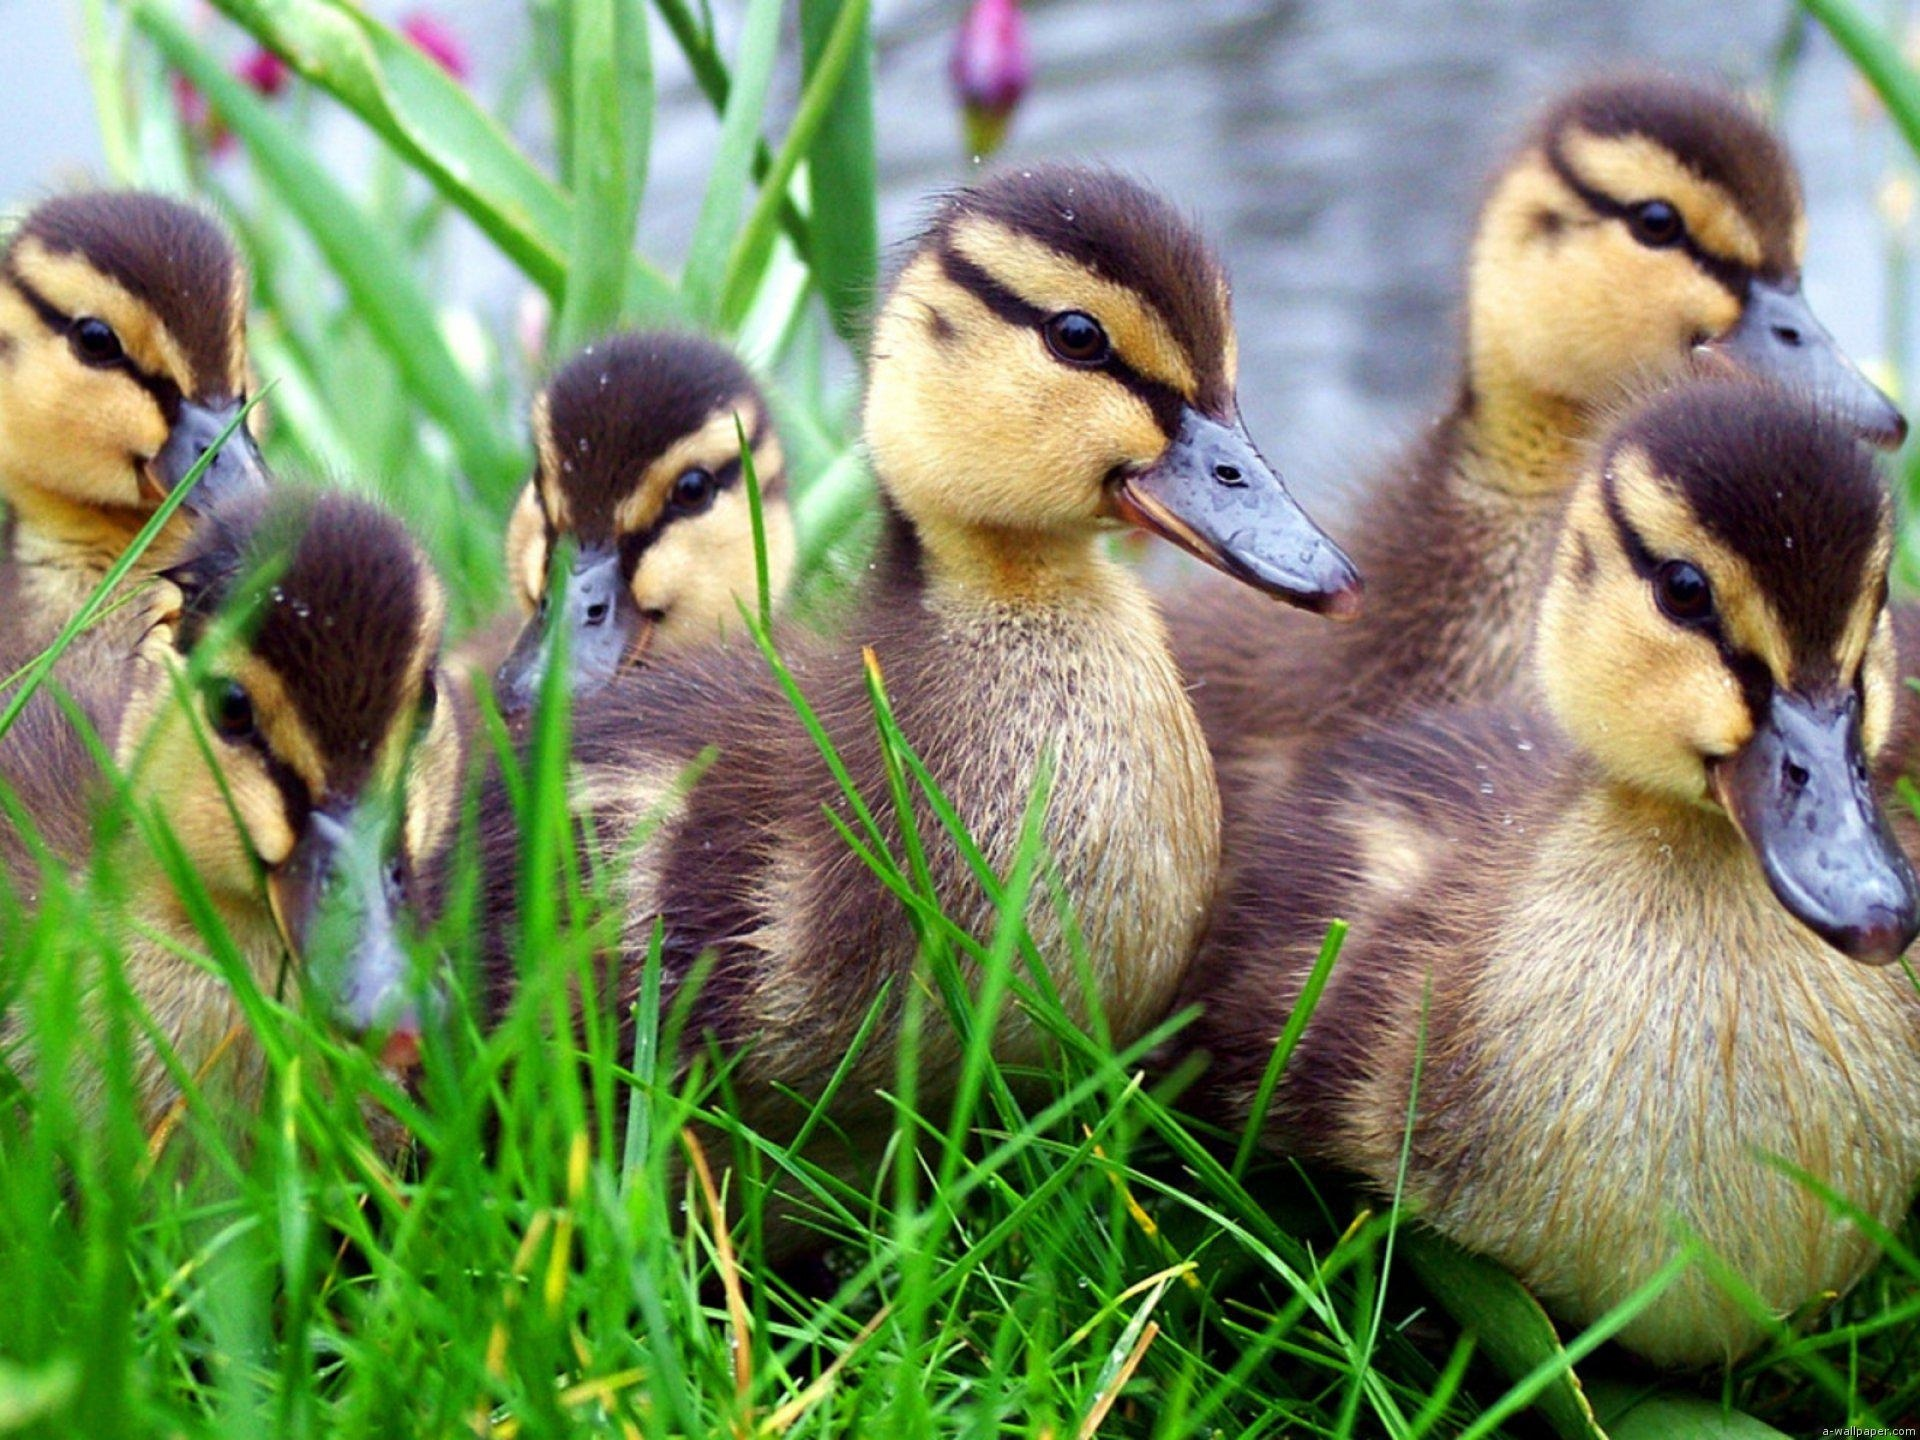 Cute little duck - photo#53